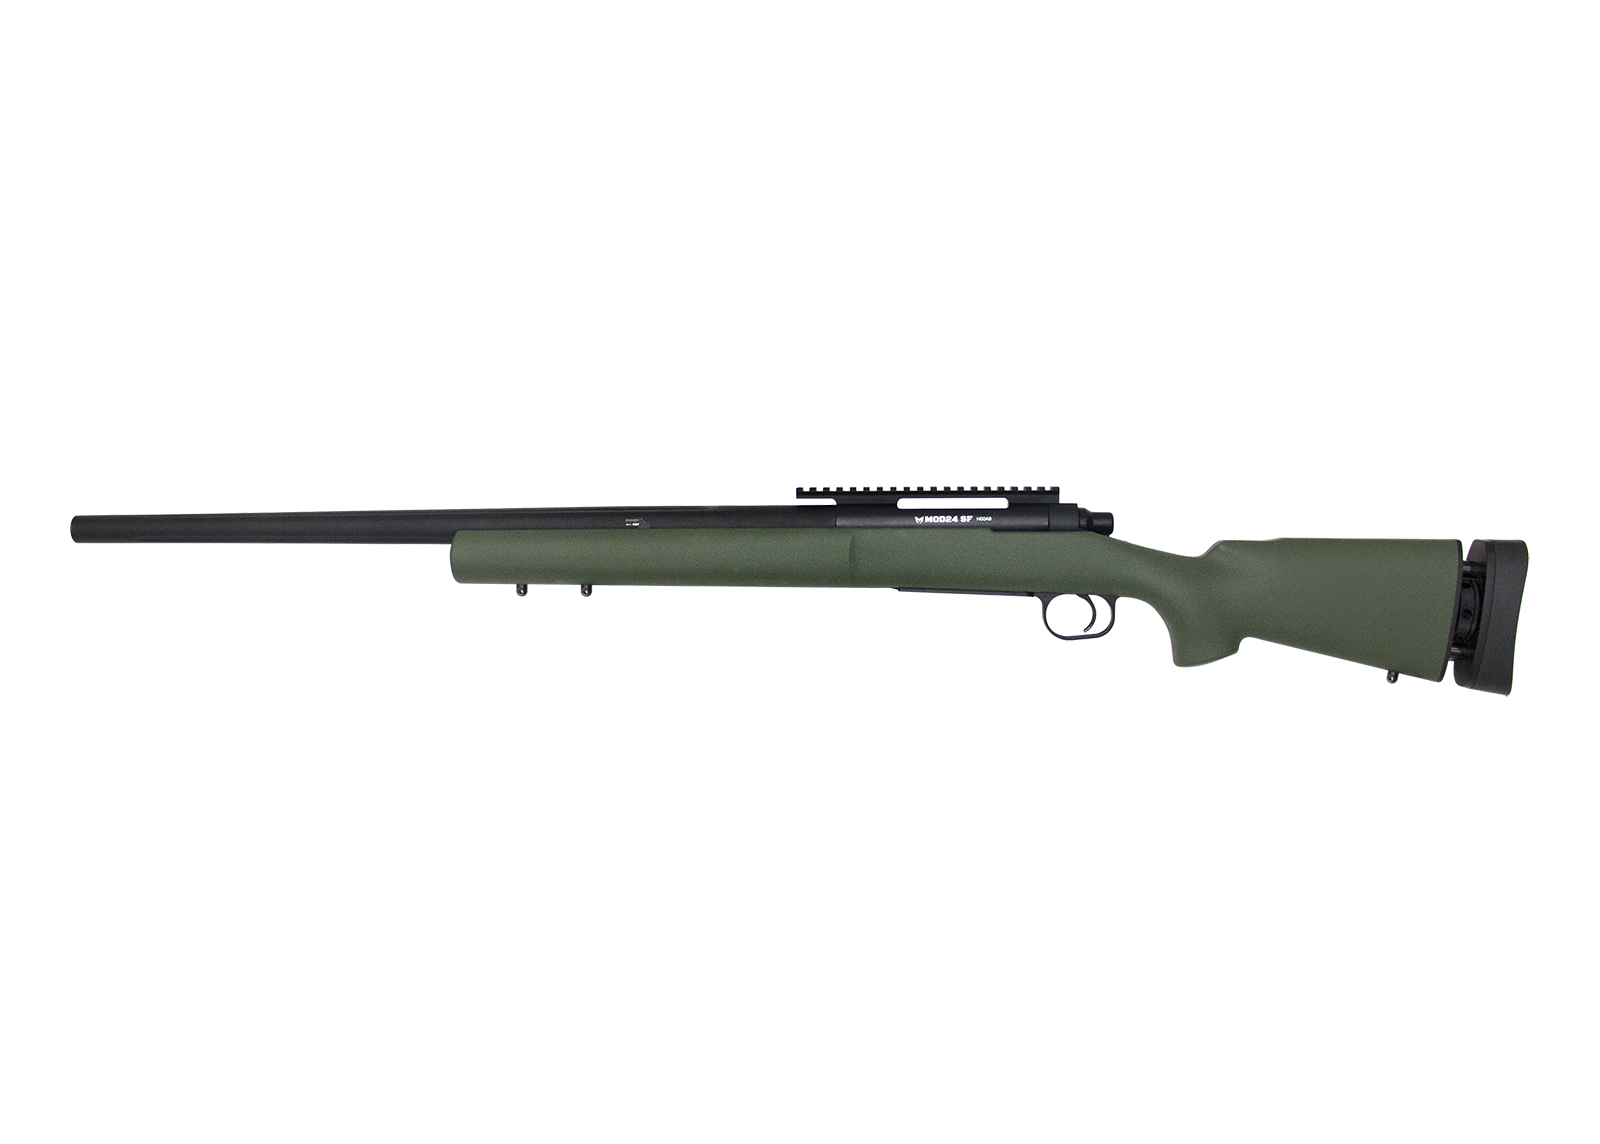 Bolt Action Airsoft Sniper Rifle MOD24 SF (OD) -  Modify Bolt Action Air Rifles